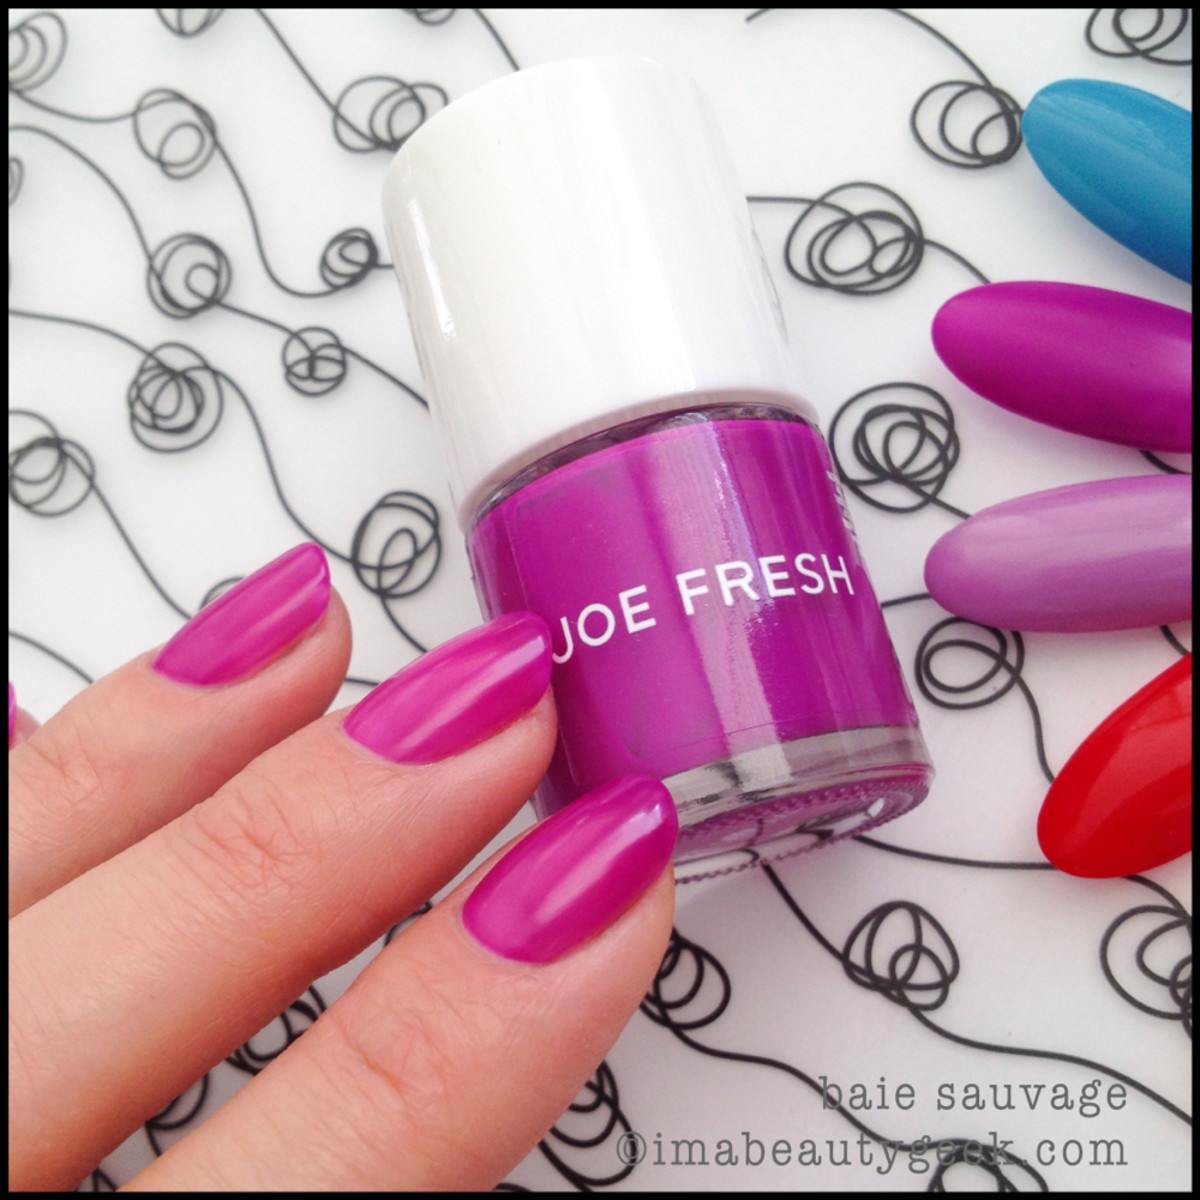 Joe Fresh Polish Baie Sauvage